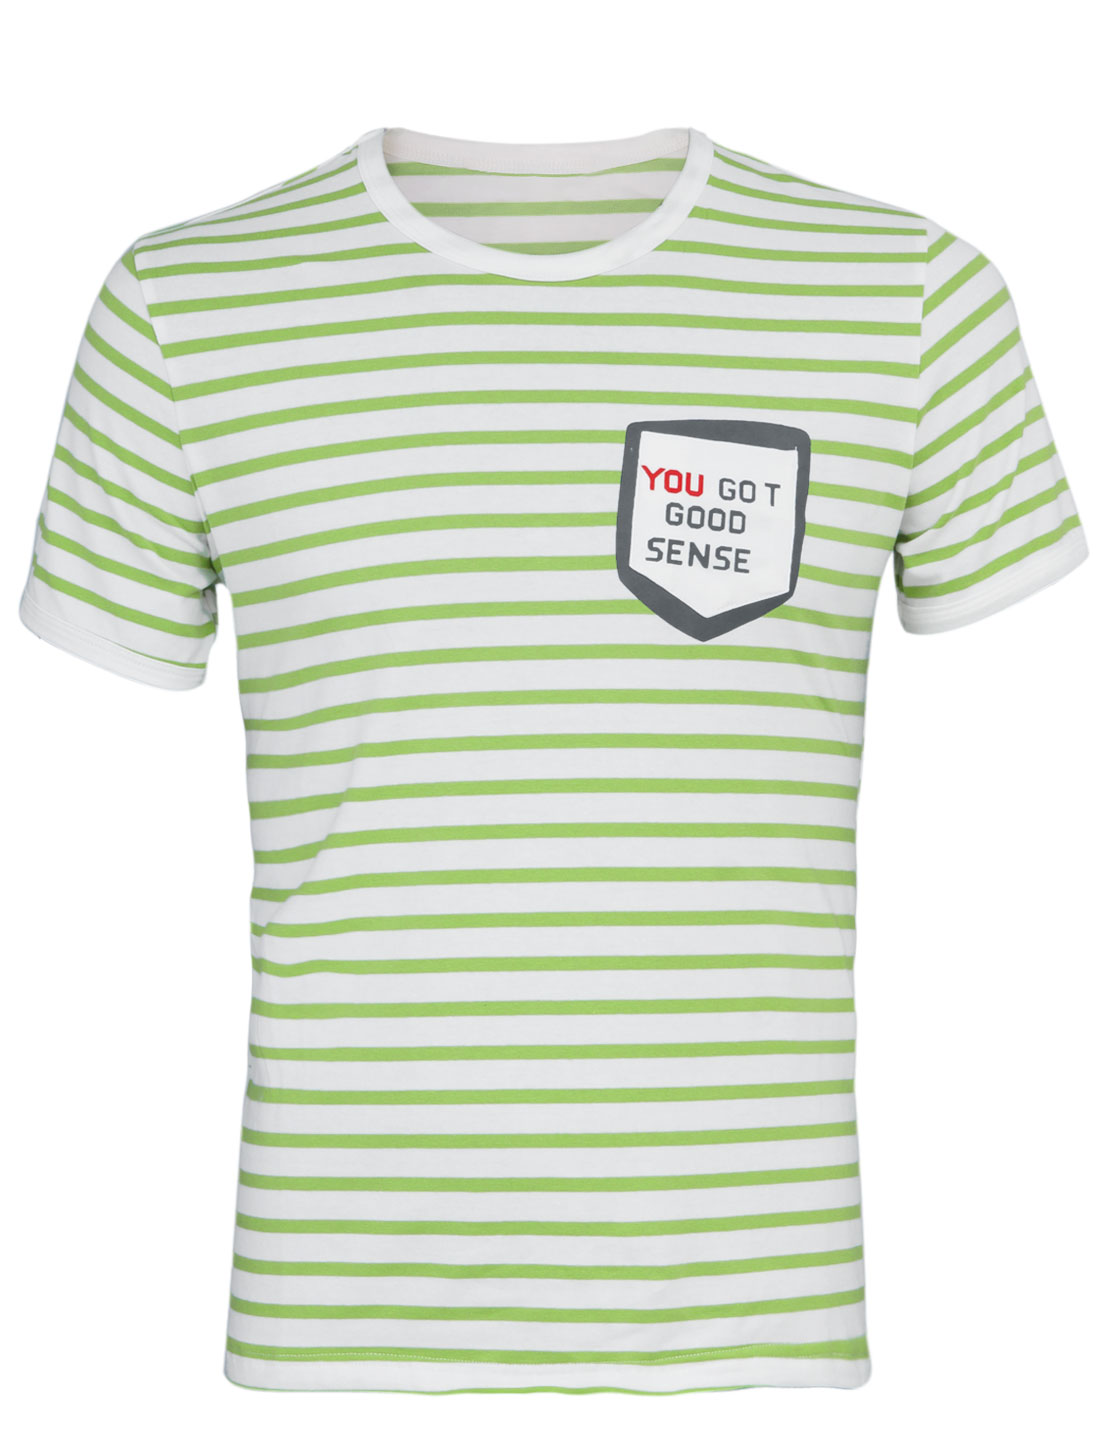 Men Slim Fit Stripes Pattern One Breast Pocket T-Shirt Green White M